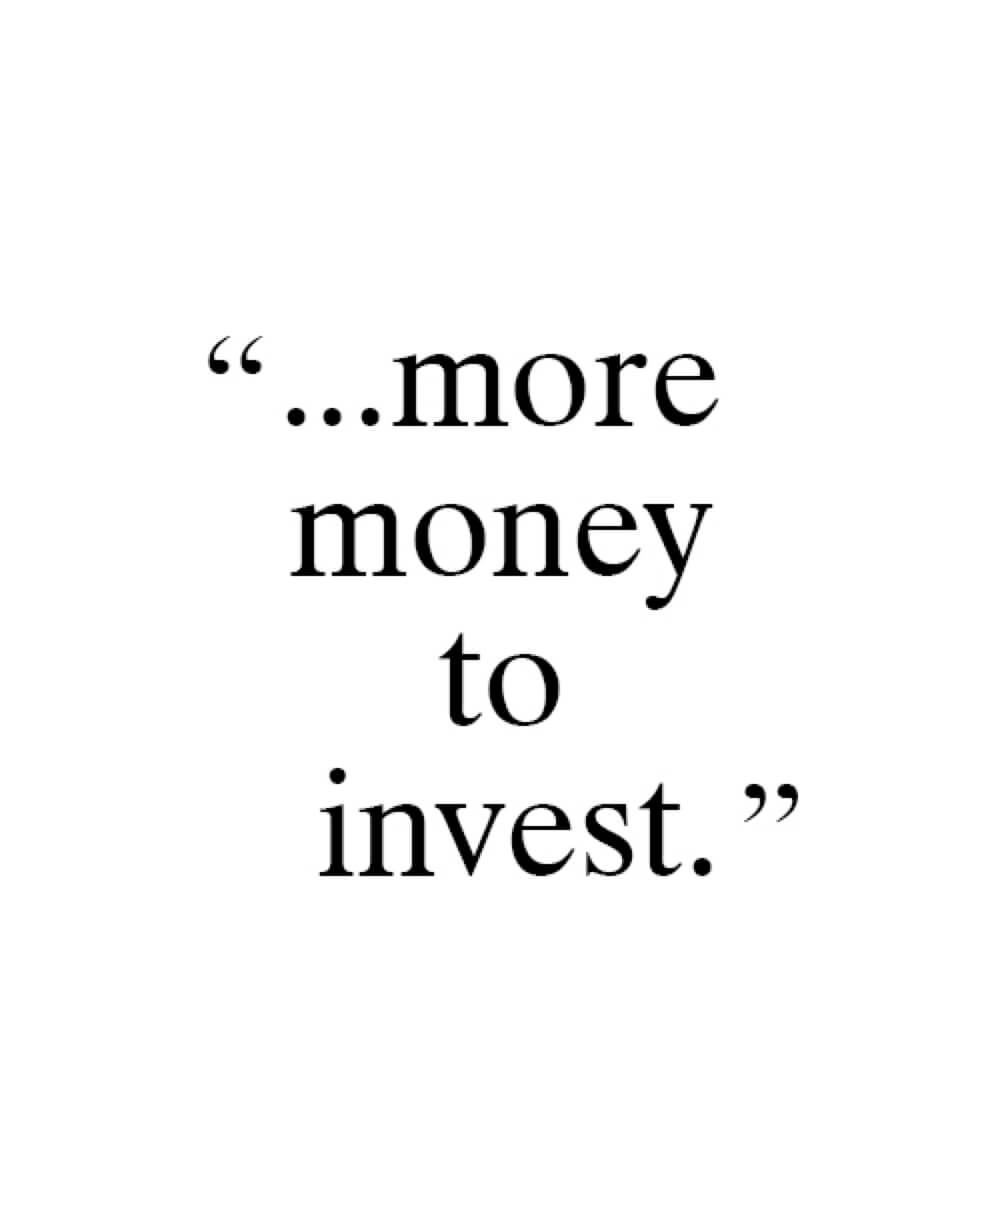 The words more money to invest.